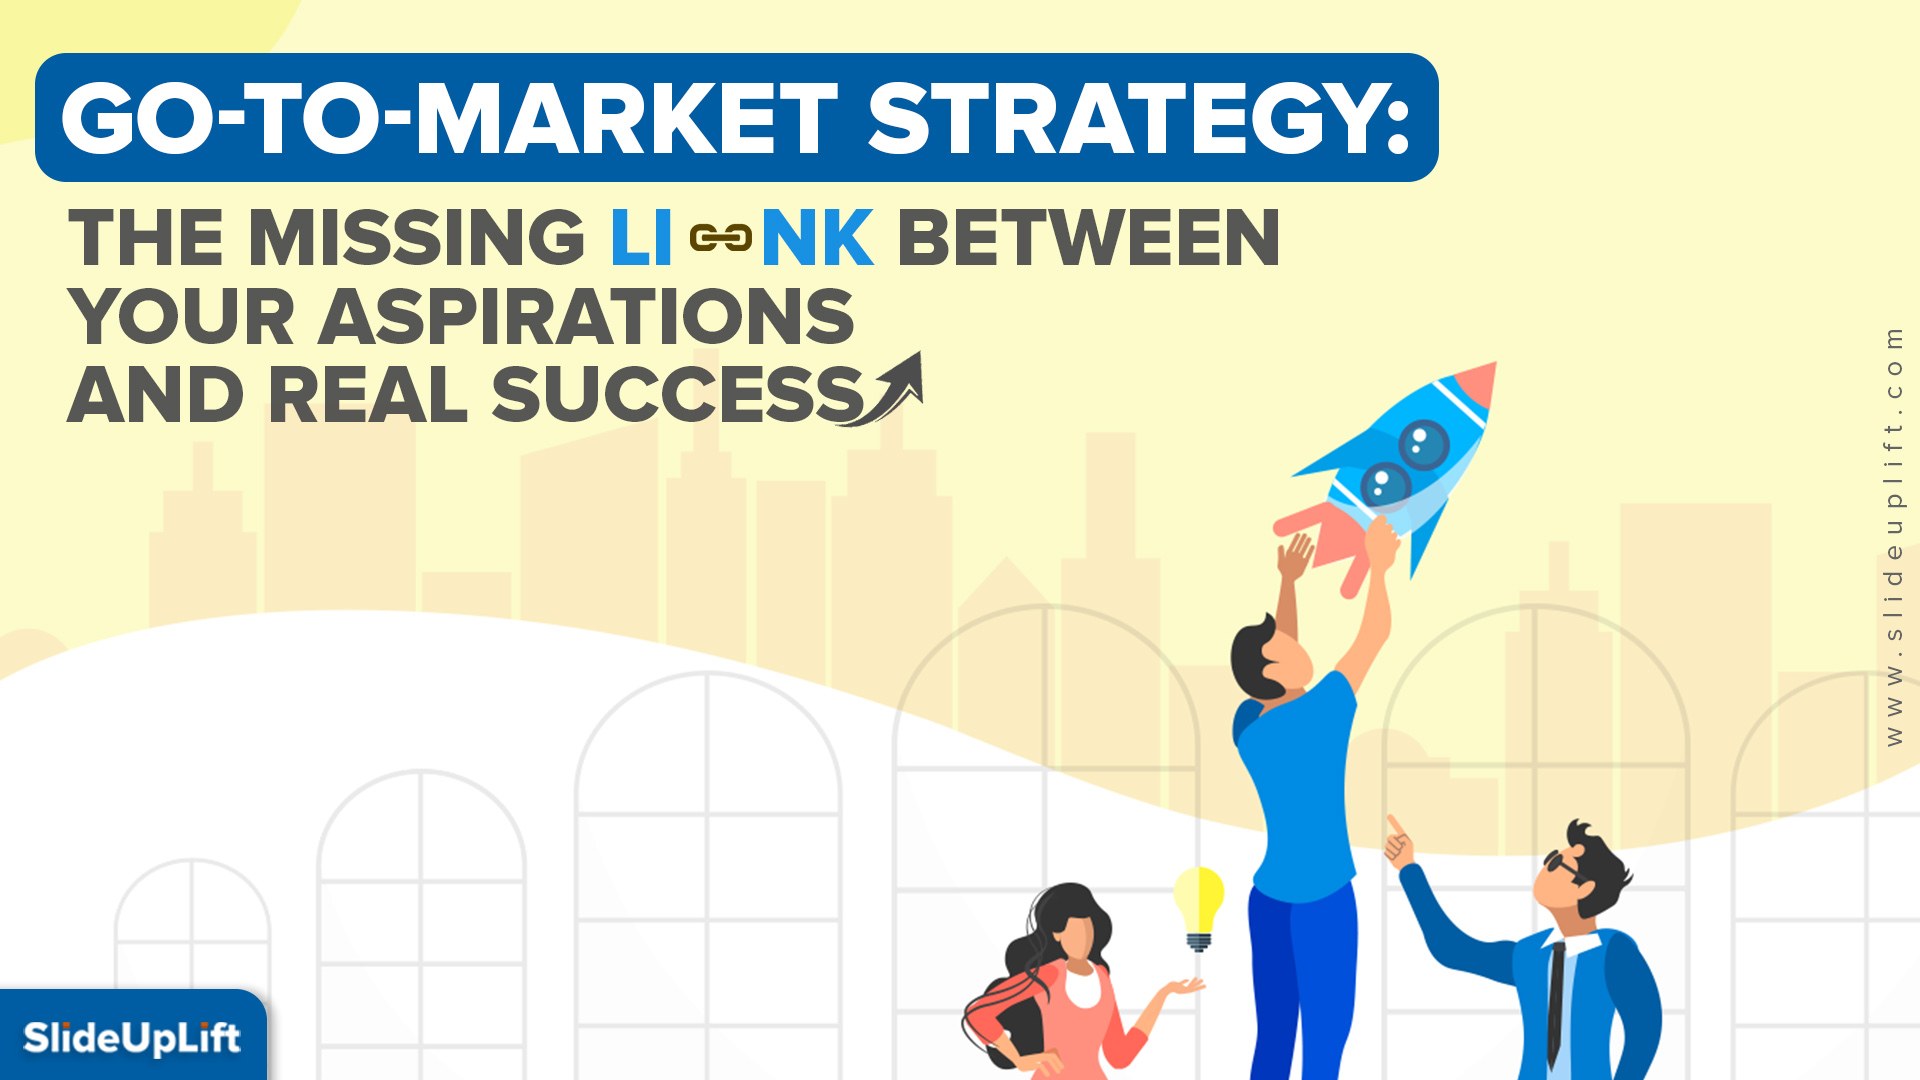 Go To Market Strategy: The missing link between your business aspirations and real success